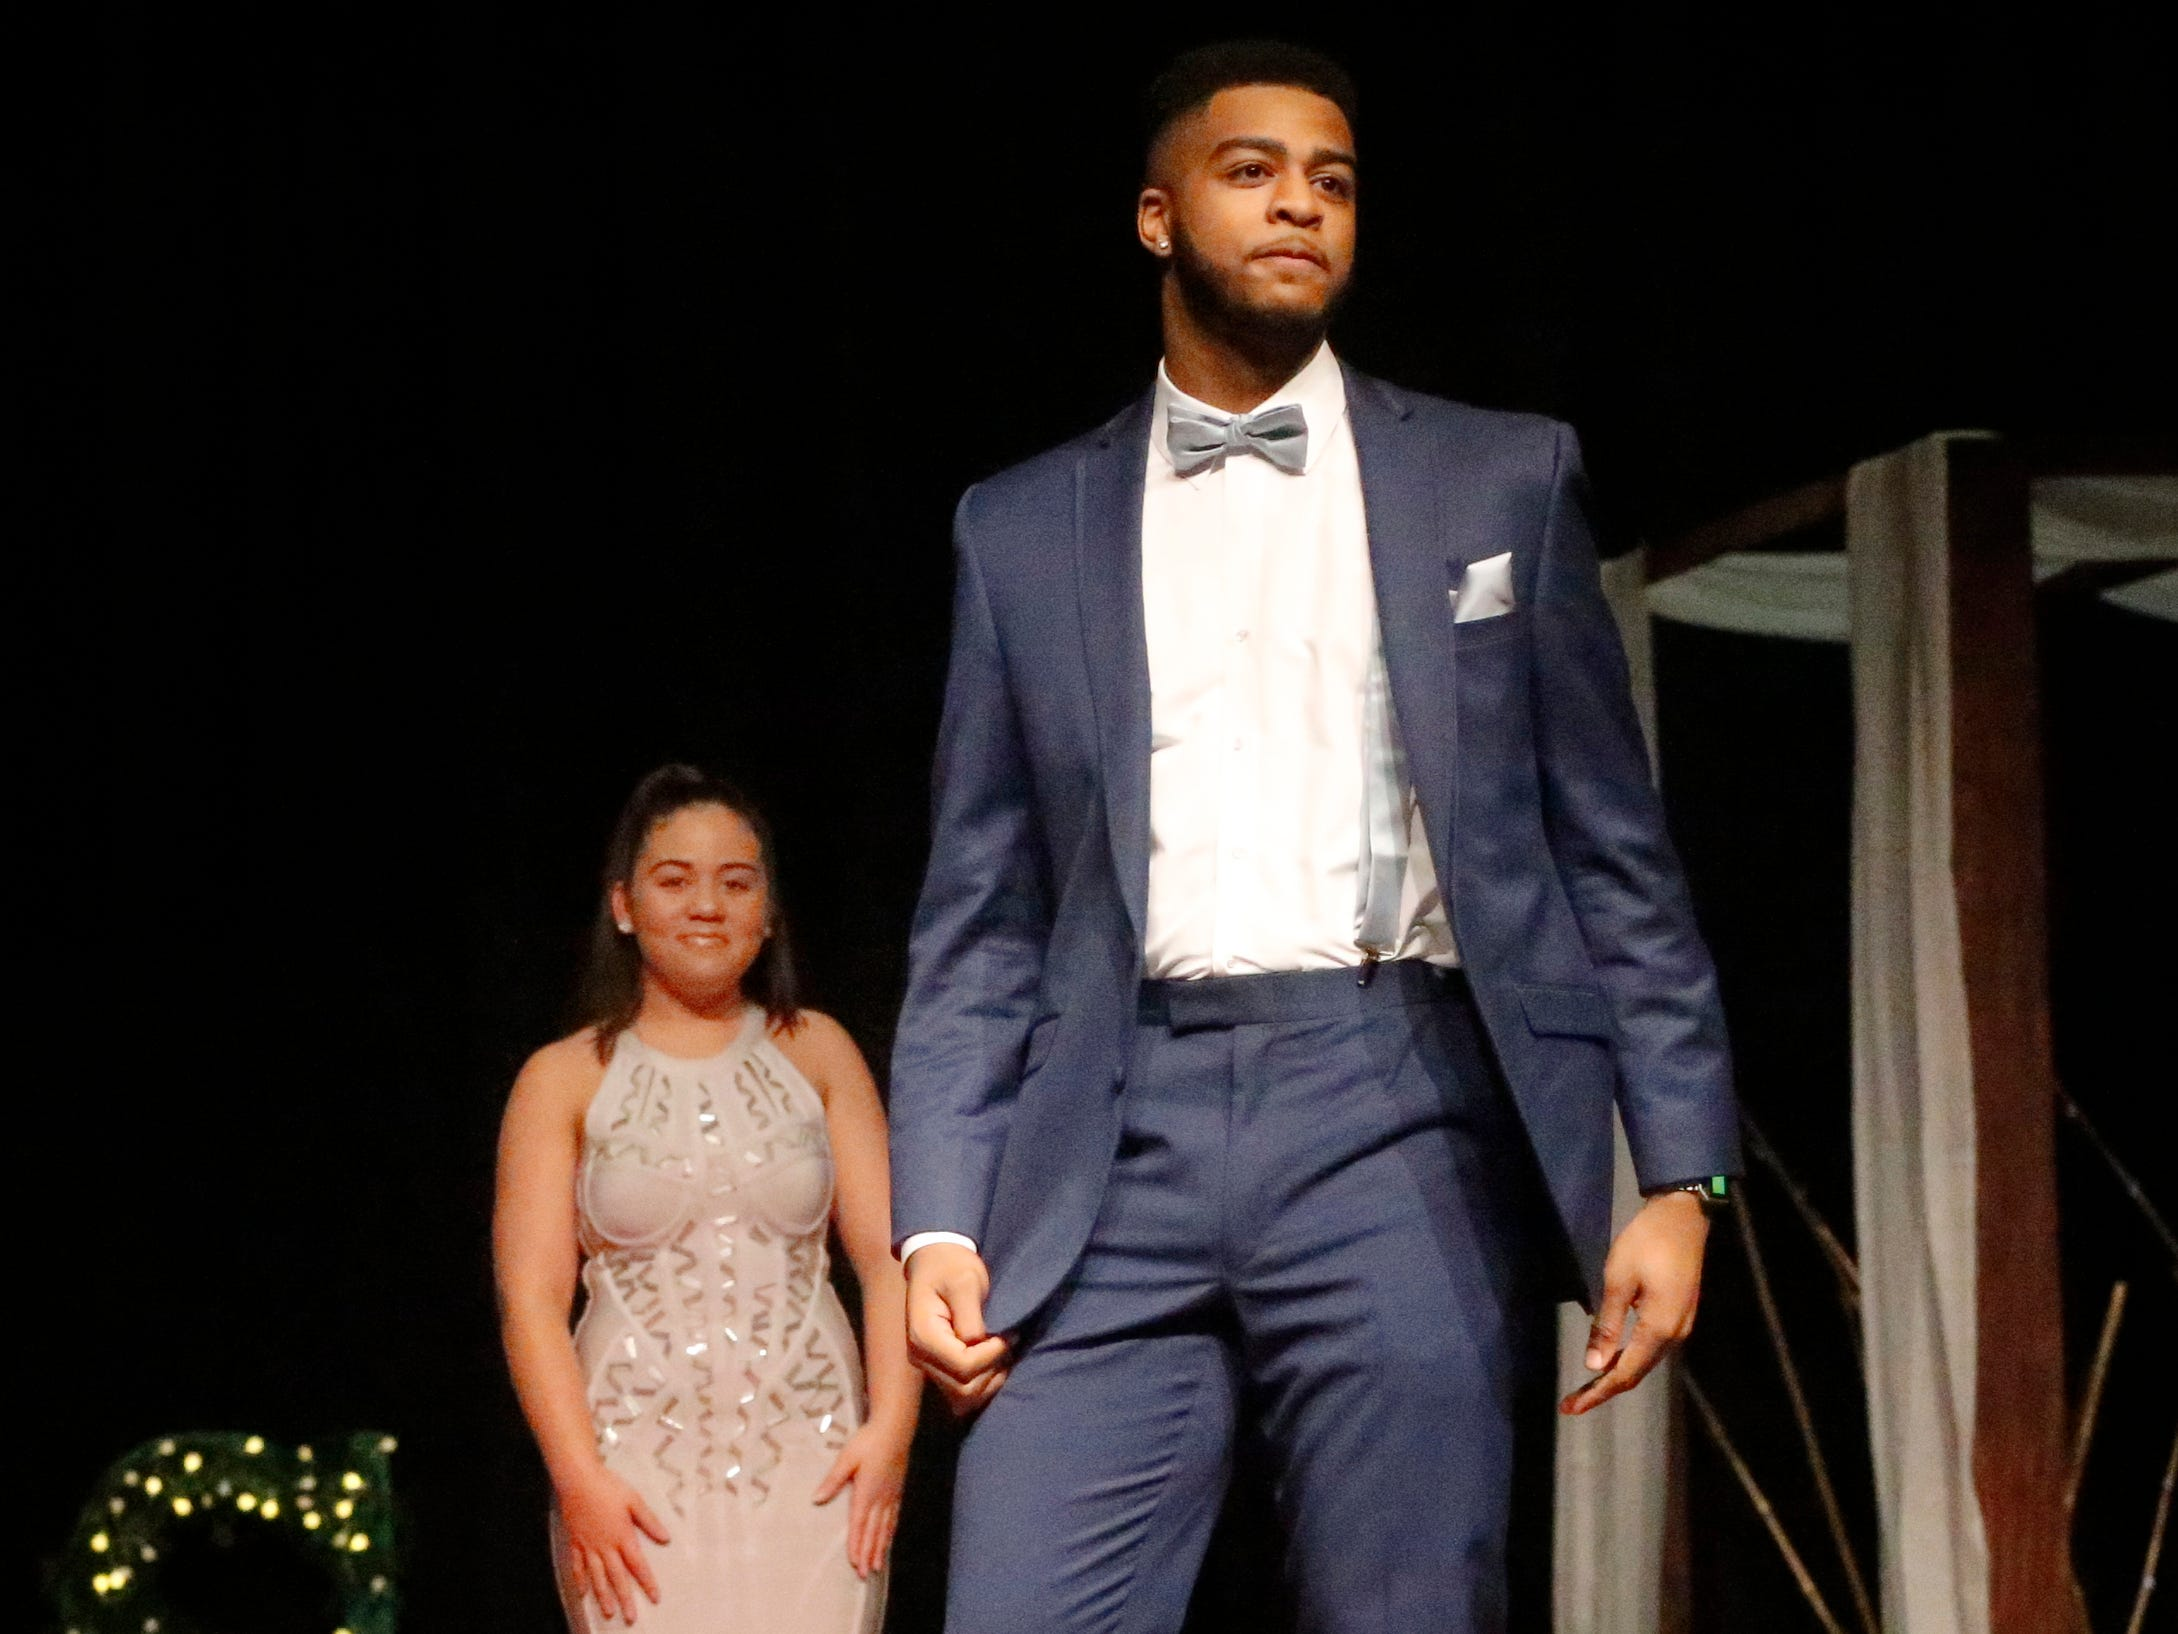 Joseph Howard steps forward to show off his tux after Sierra Cruz modeled her dress during the Siegel Prom Fashion show on Thursday, Feb. 14, 2019.